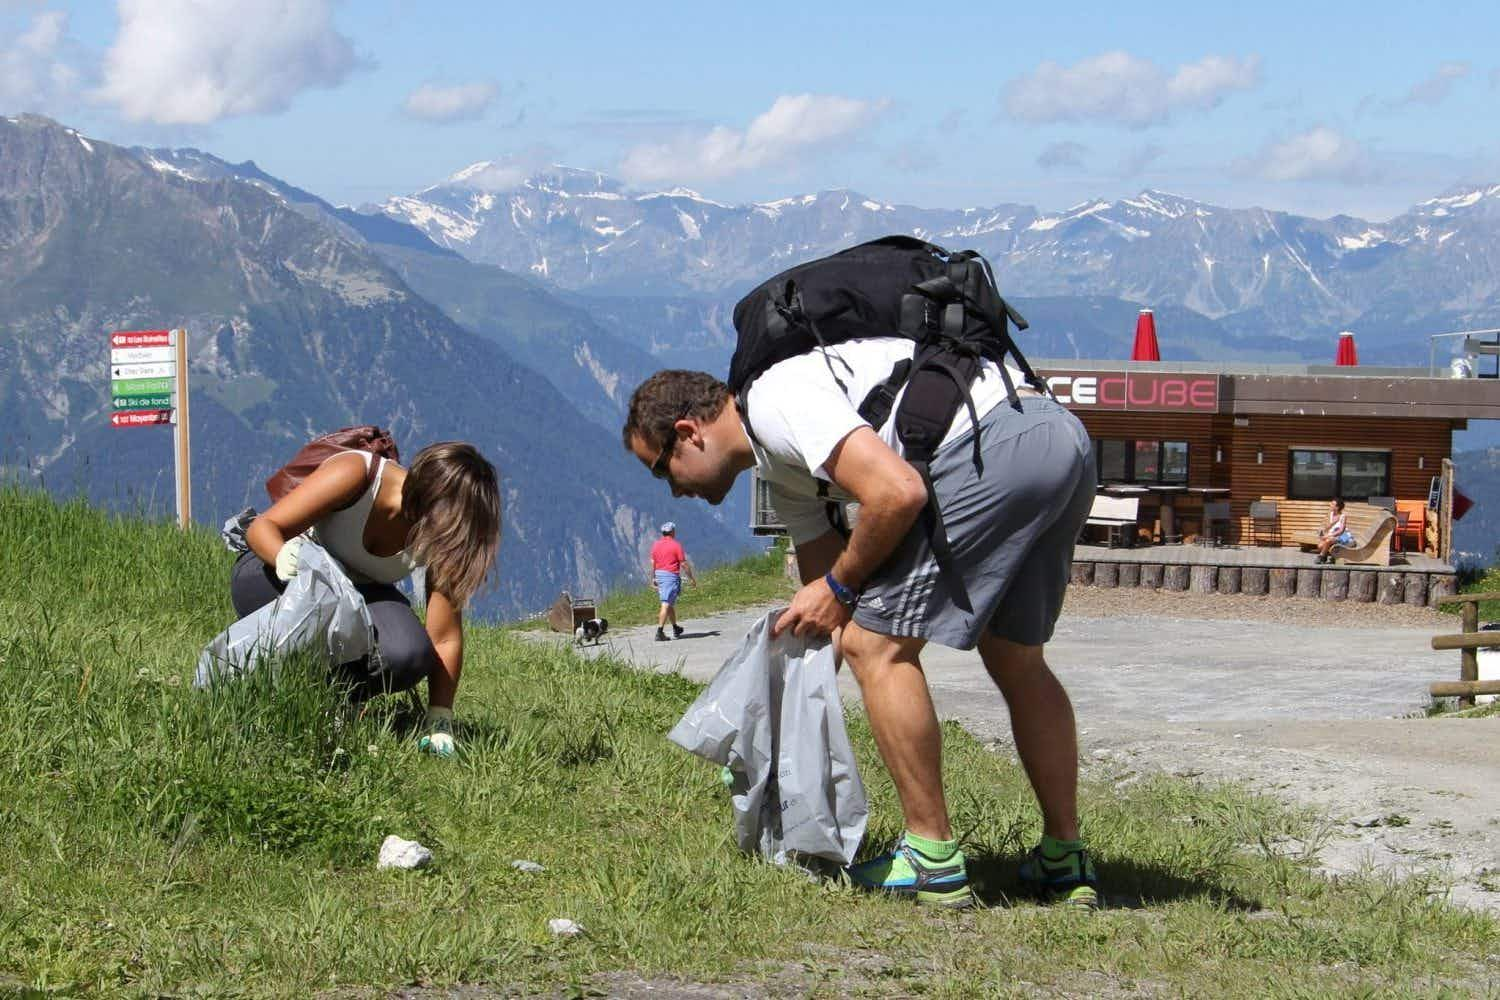 If you fancy helping to clean up the Swiss Alps by picking up litter, this hiking trip could be for you